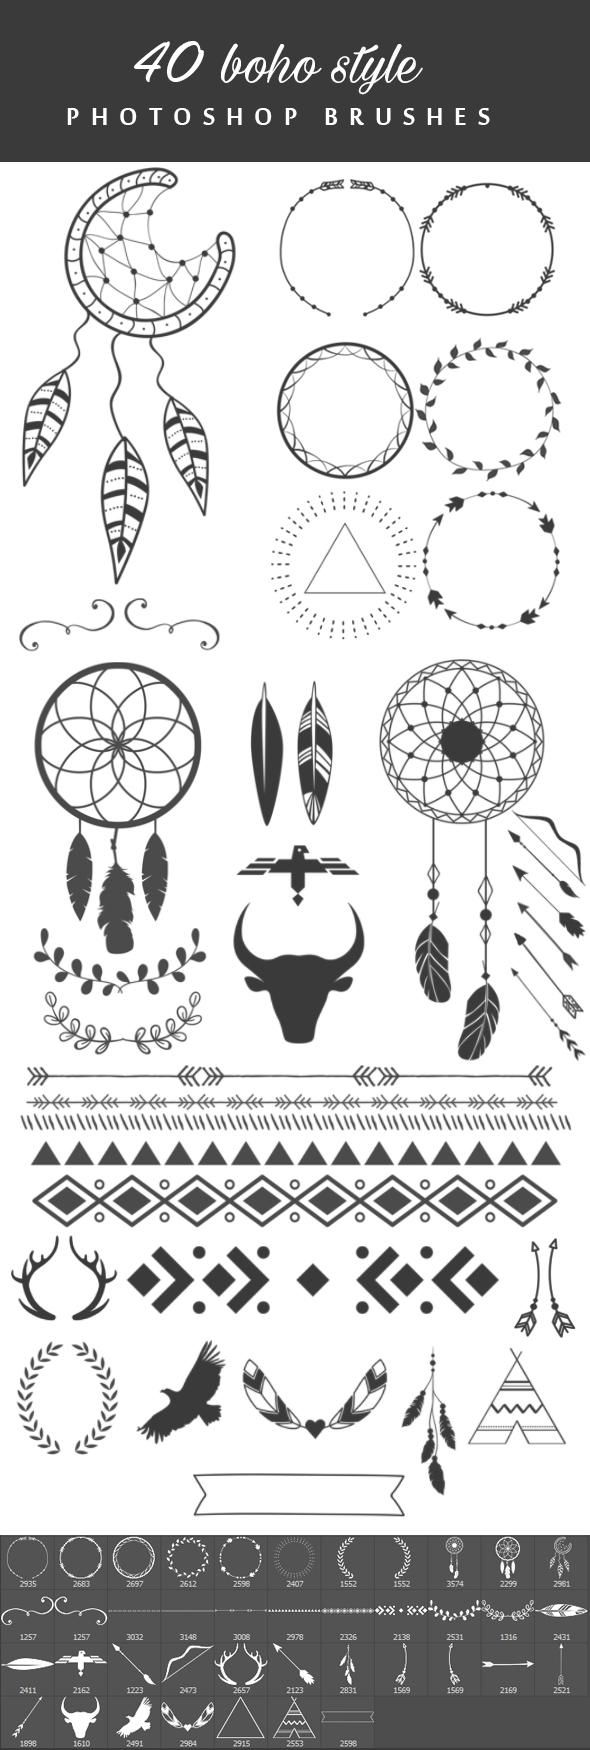 40 Boho Style Brushes Boho graphic design